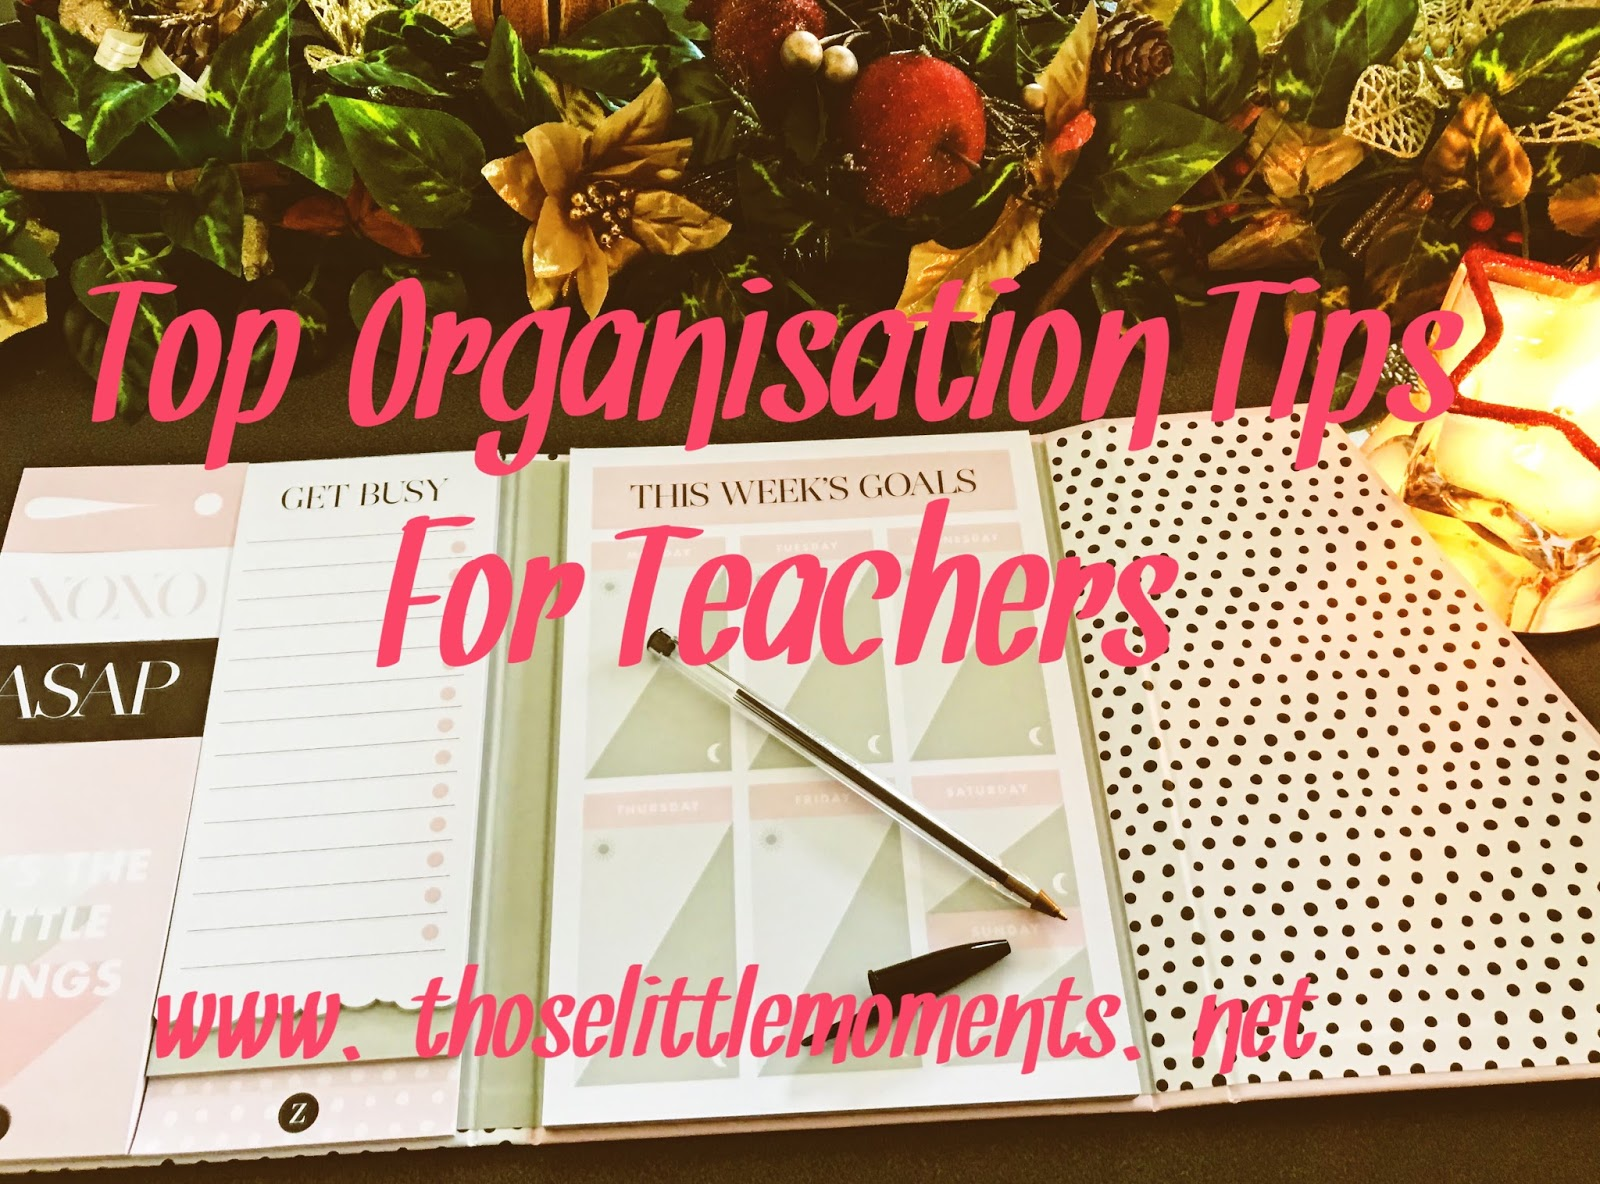 classroom organisation tips, organisation tips for teachers, time management tips for teachers, how to manage your time as a teacher, top organisation tips for teachers